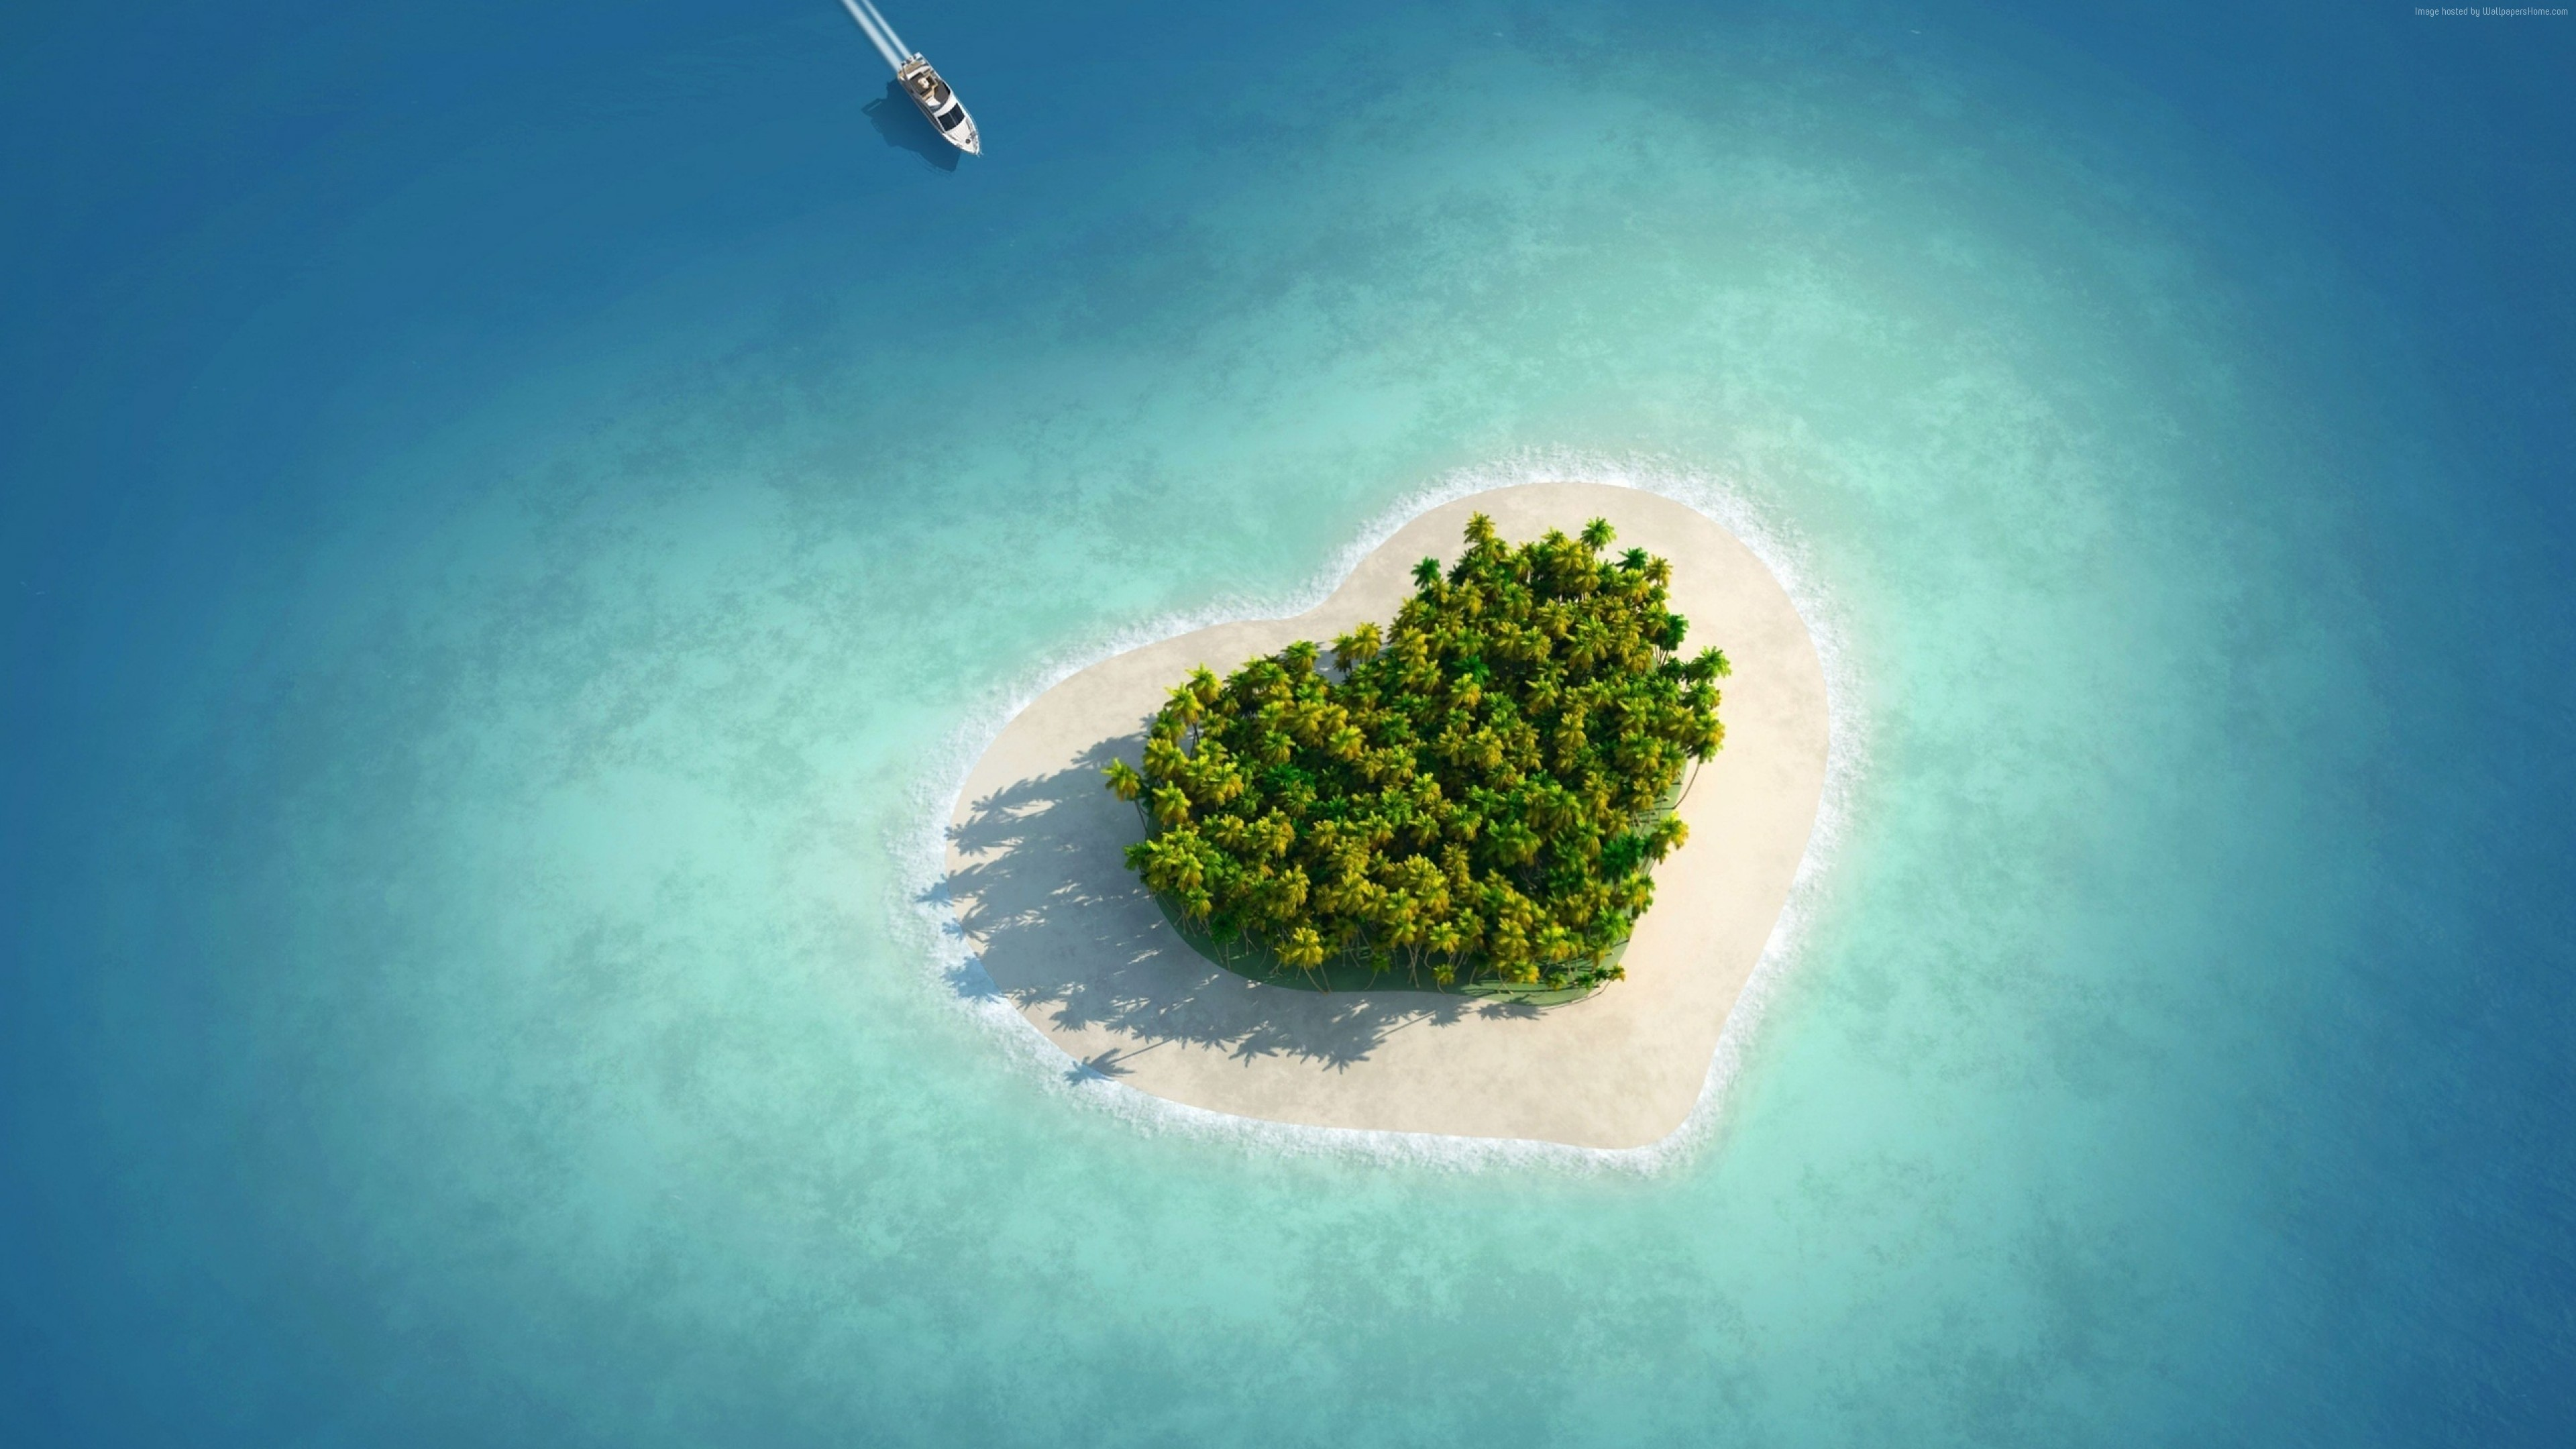 Stock Images love image, heart, HD, island, ocean, Stock Images